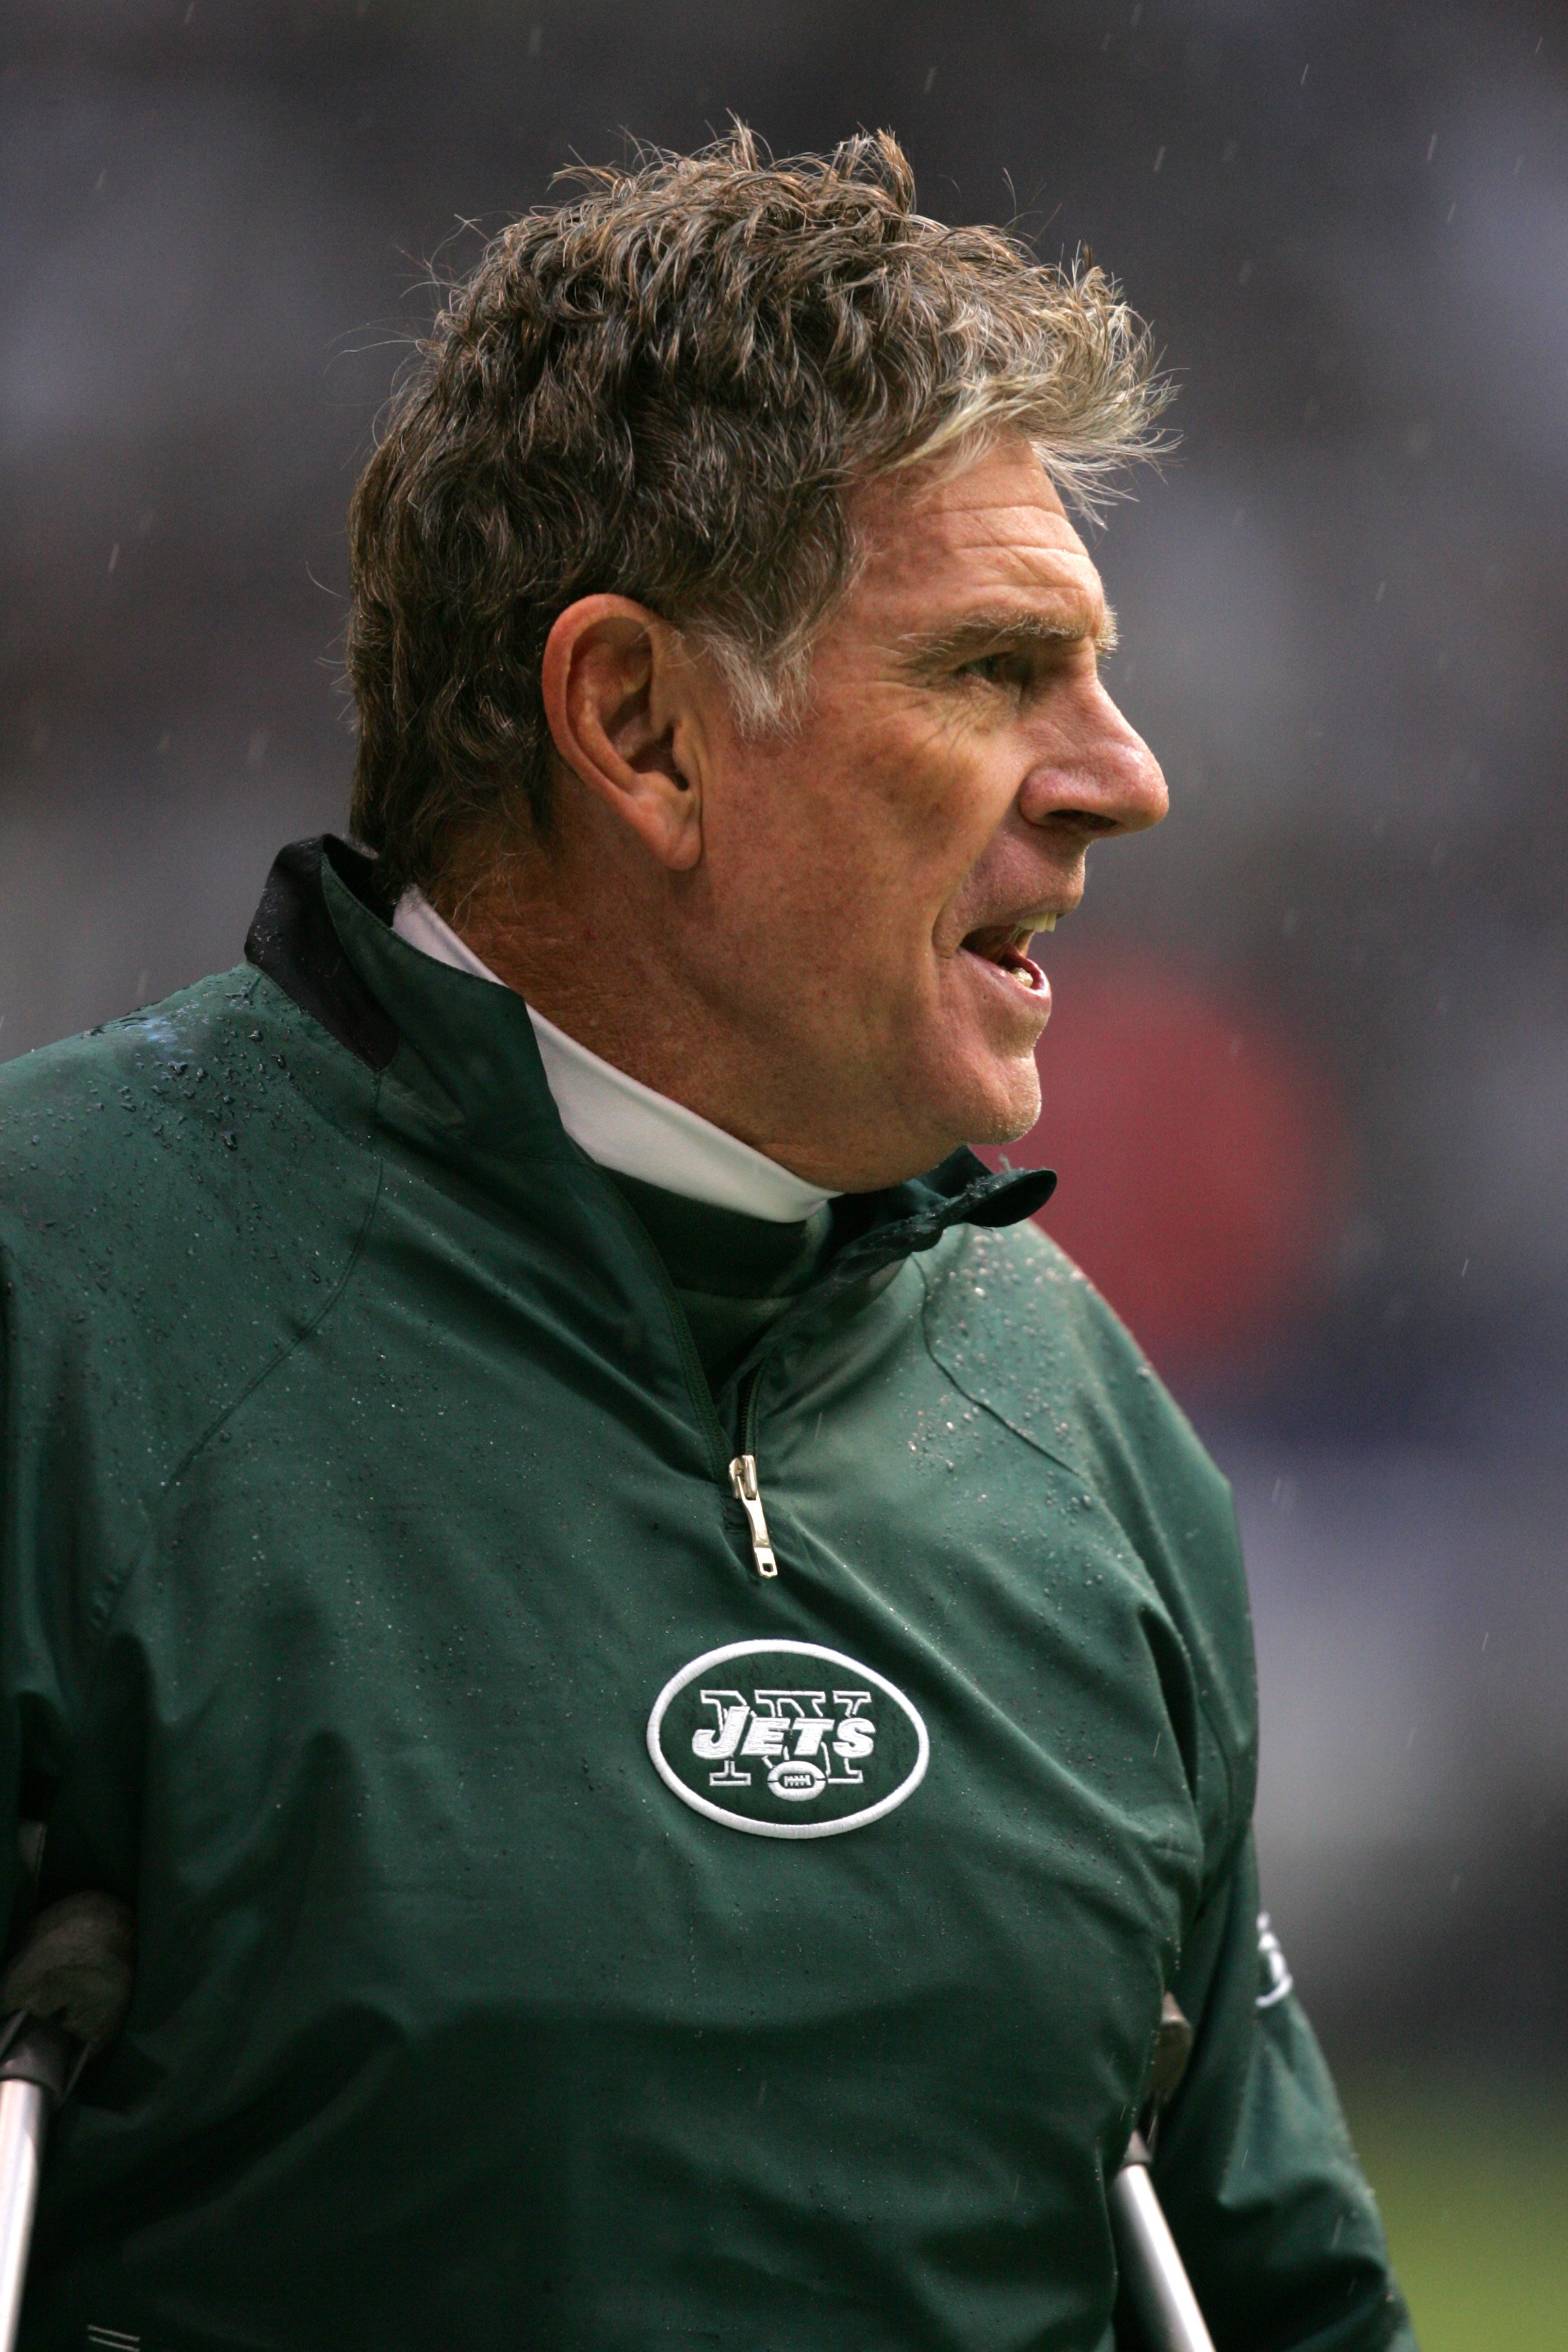 IRVING - NOVEMBER 22:  Special teams coordinator Mike Westhoff of the New York Jets yells from the sidelines during the NFL game against the Dallas Cowboys at Texas Stadium on November 22, 2007 in Irving, Texas. (Photo by Ronald Martinez/Getty Images)